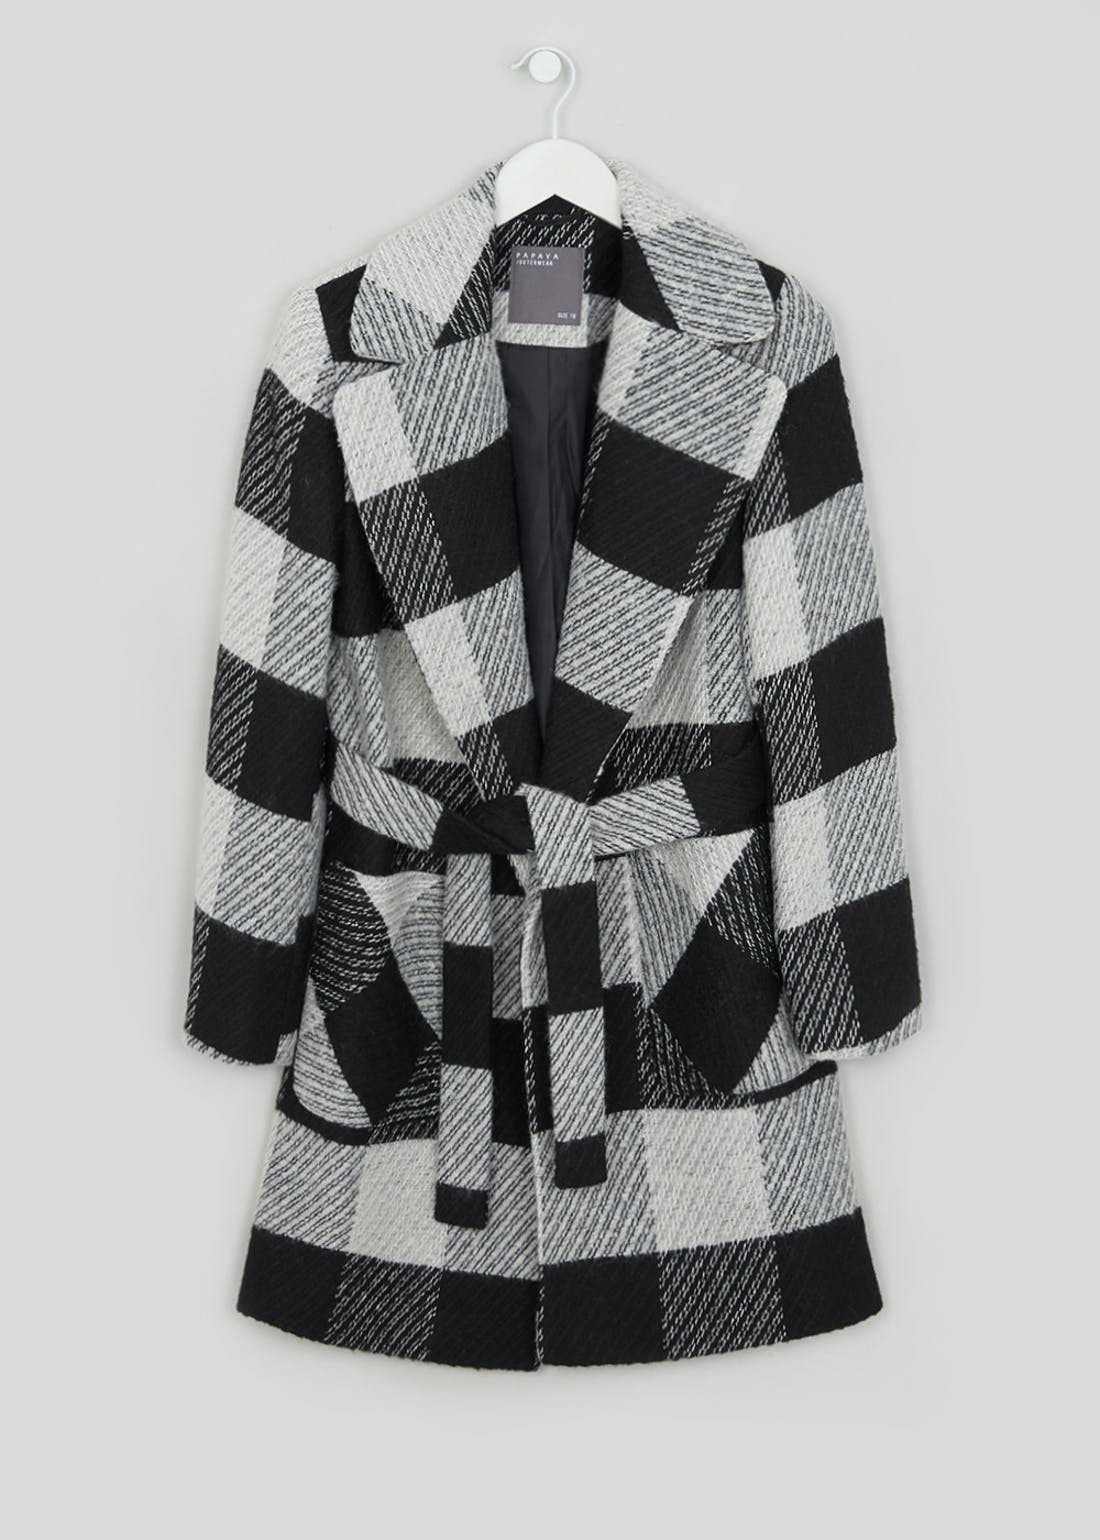 Monochrome Check Wrap Coat